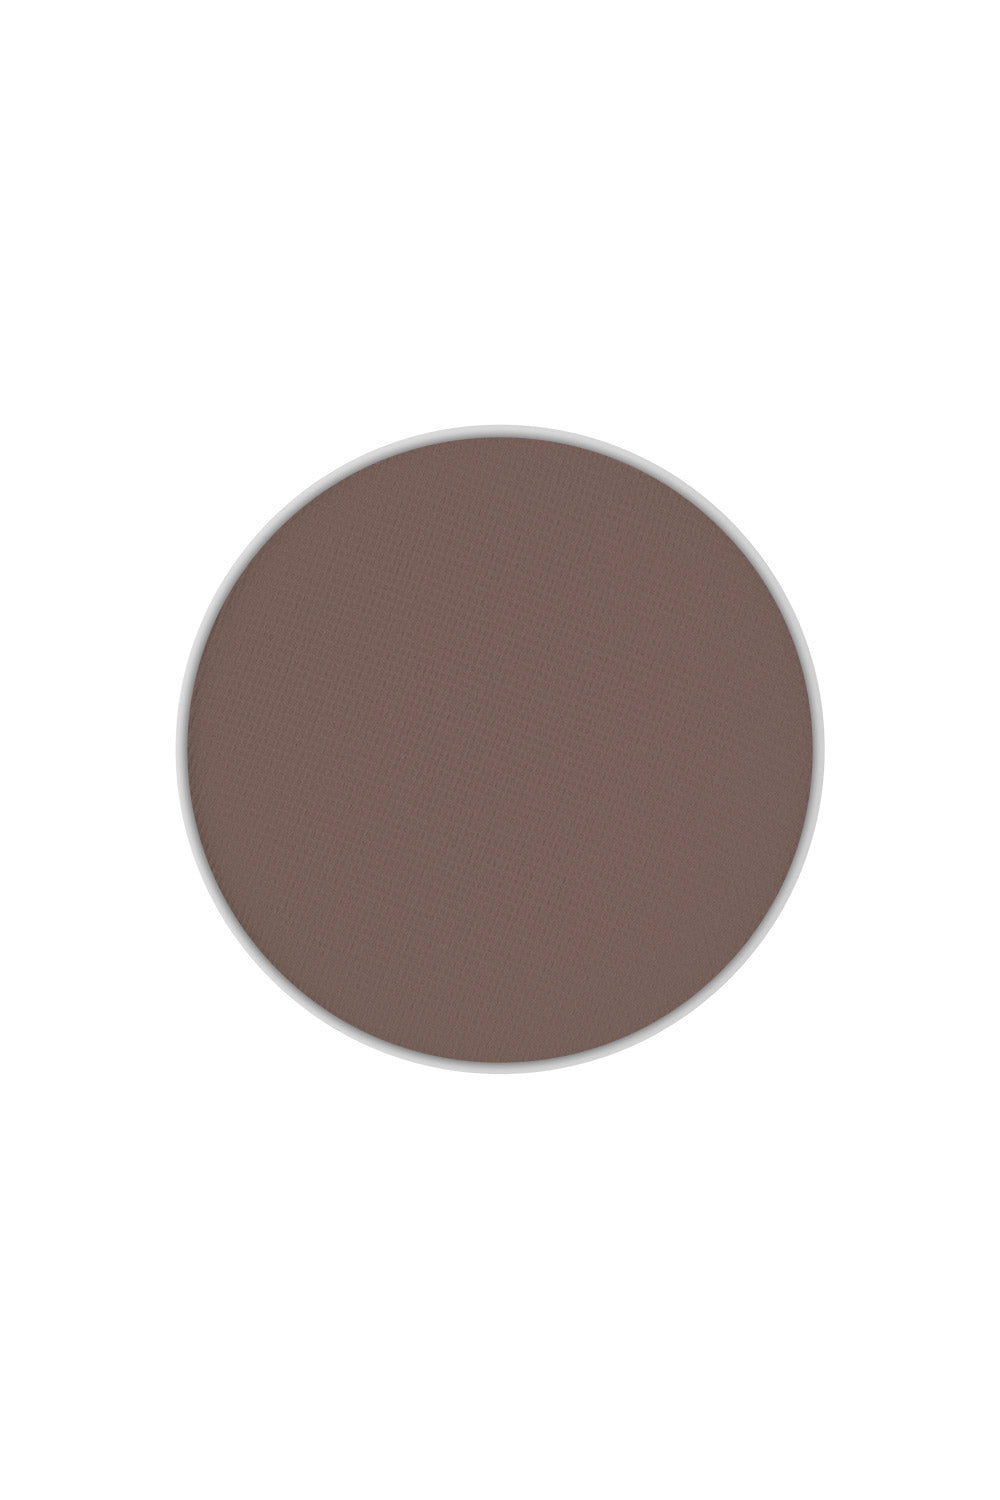 Type 2 Eyeshadow Pan - Deep Brown